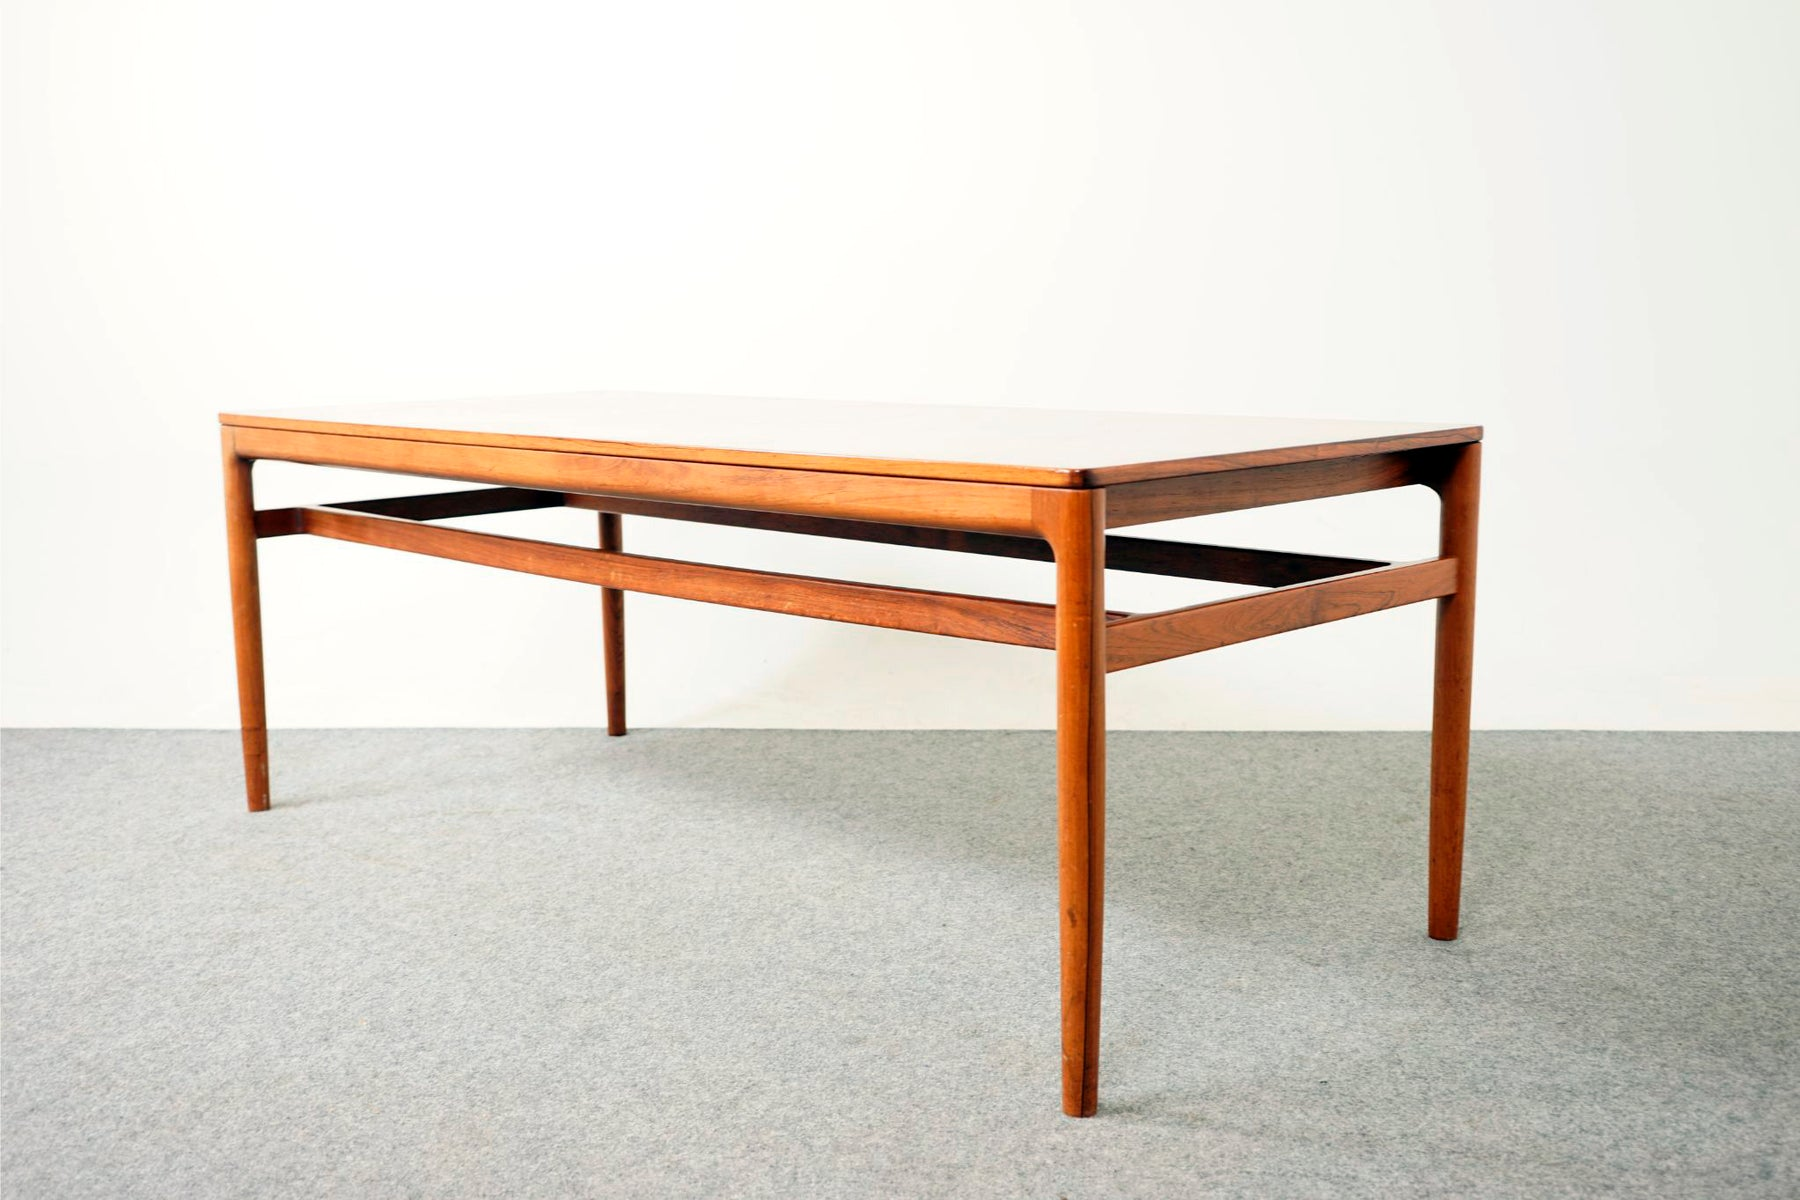 Scandinavian Coffee Table Made With Rosewood - (317-047)